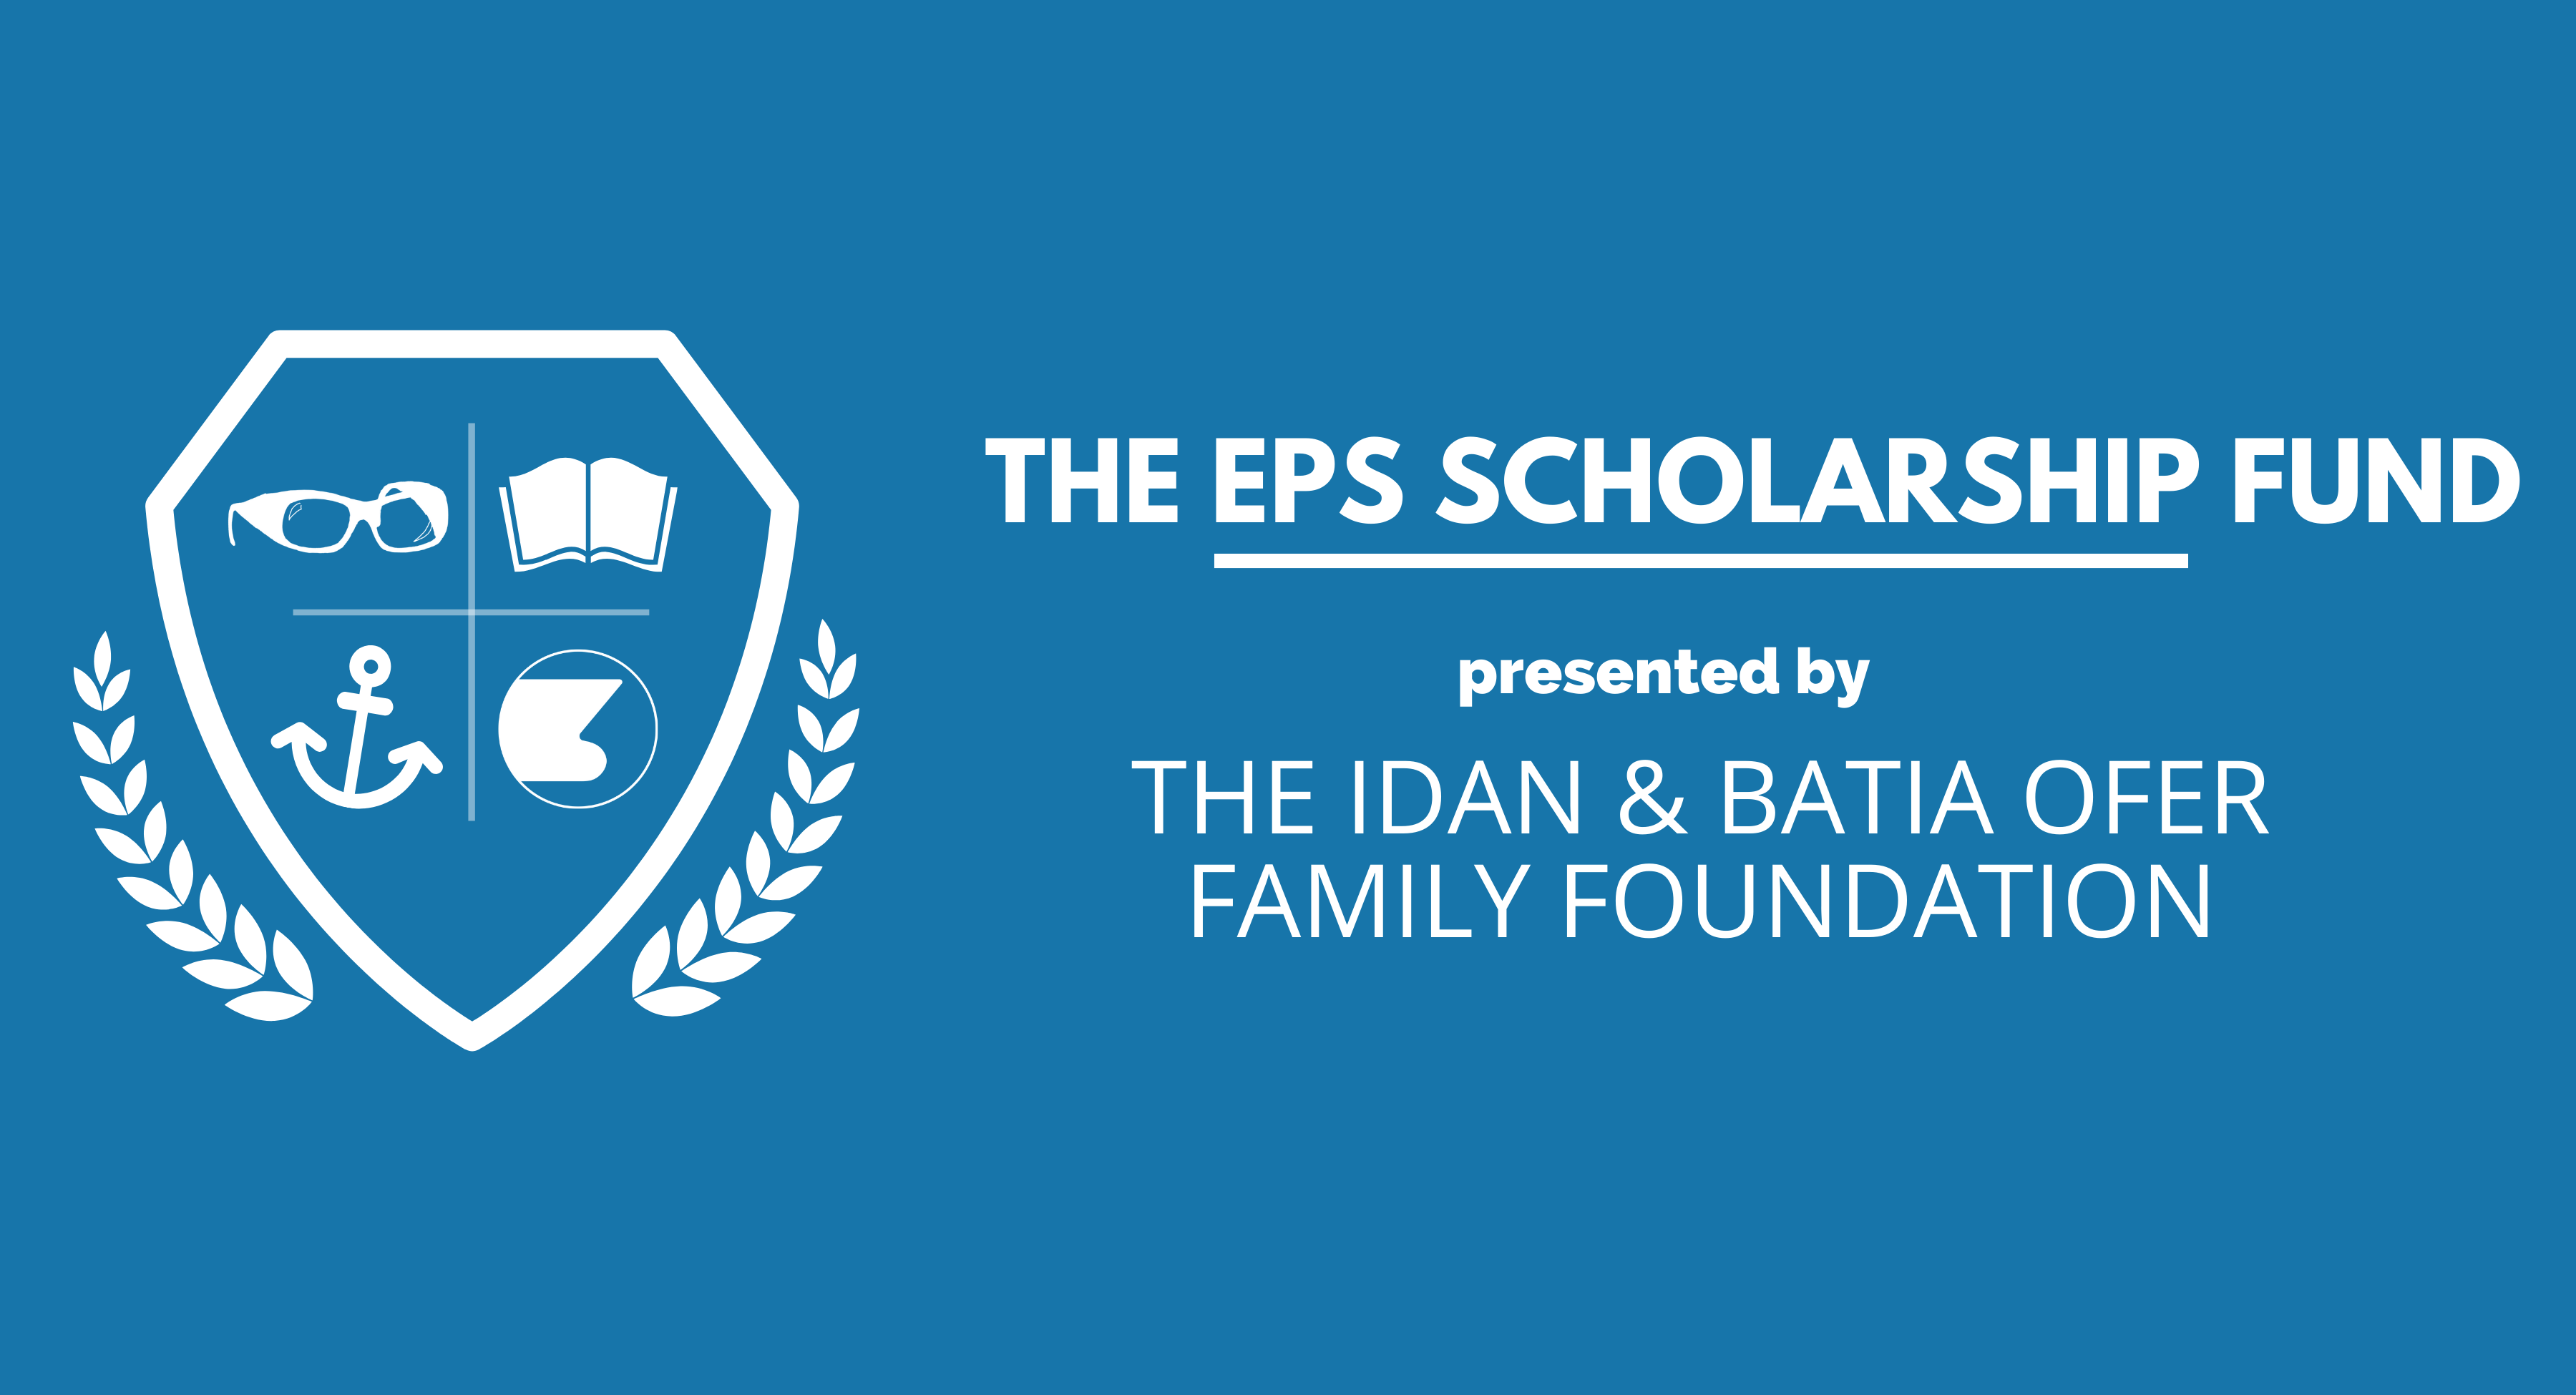 Introducing the EPS Scholarship fund